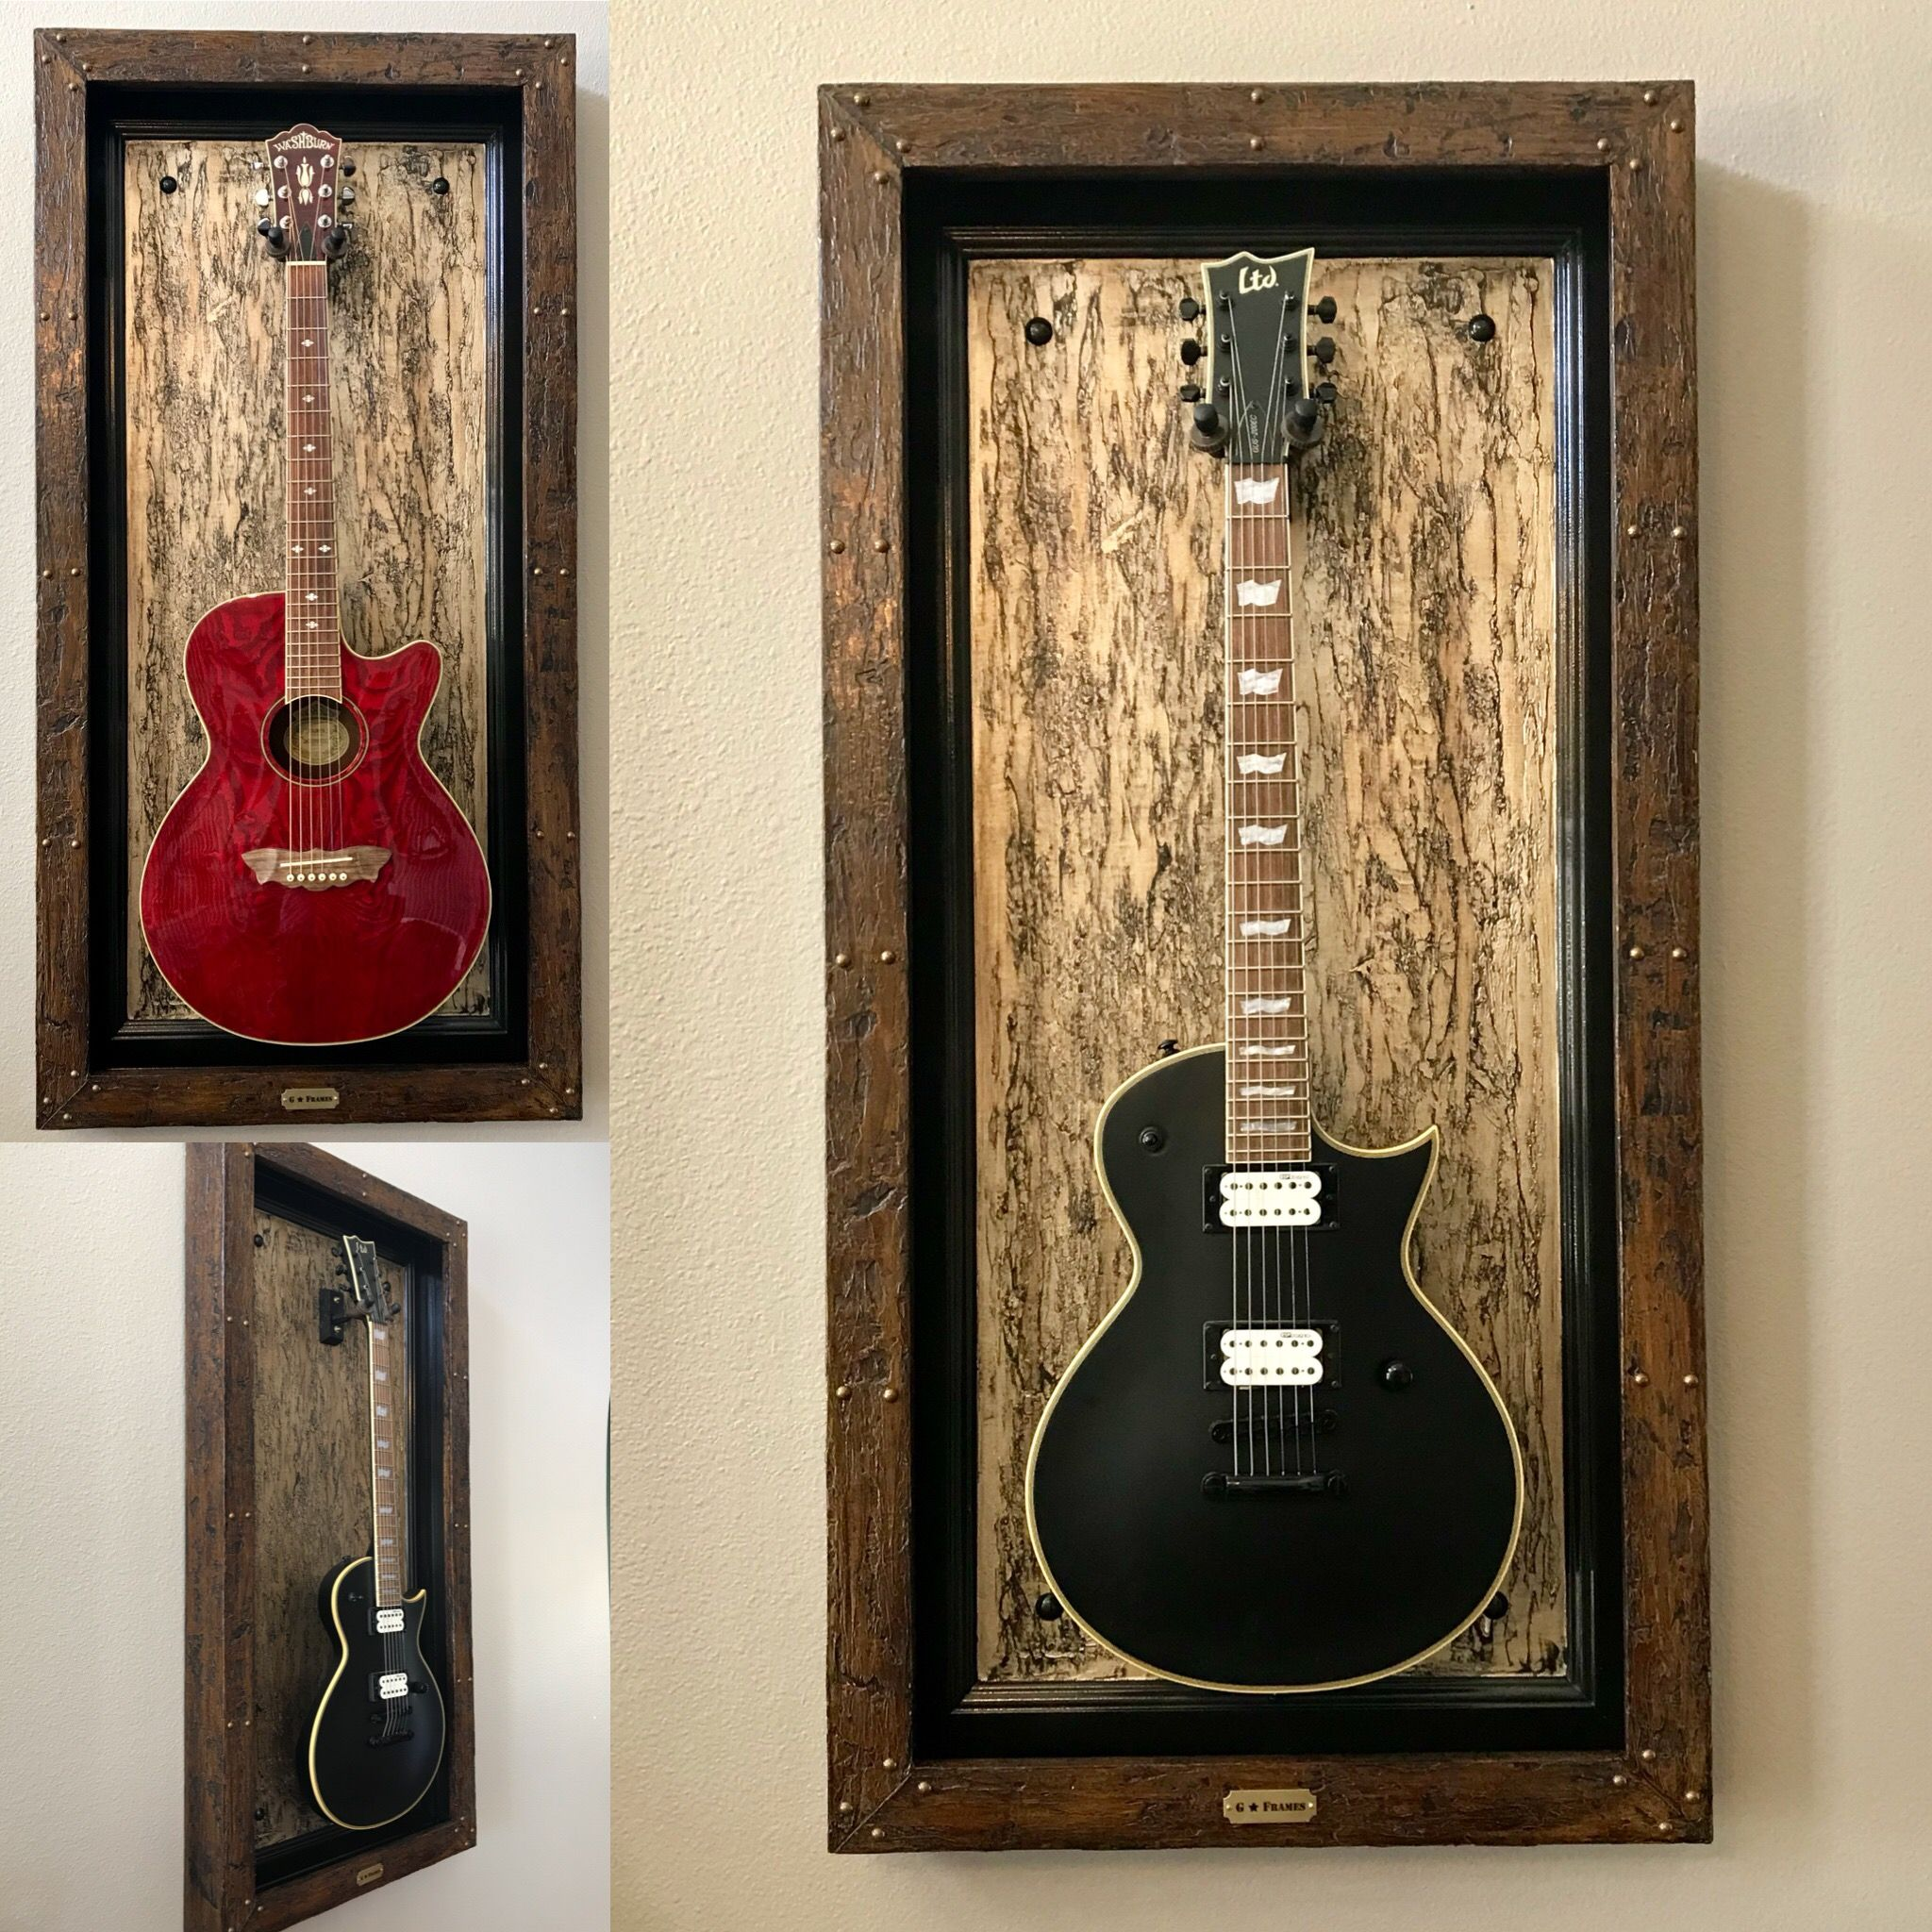 Gold wizard wood g frame guitar display frame guitar hanger gold wizard wood g frame guitar display frame guitar hanger holder gframes jeuxipadfo Gallery